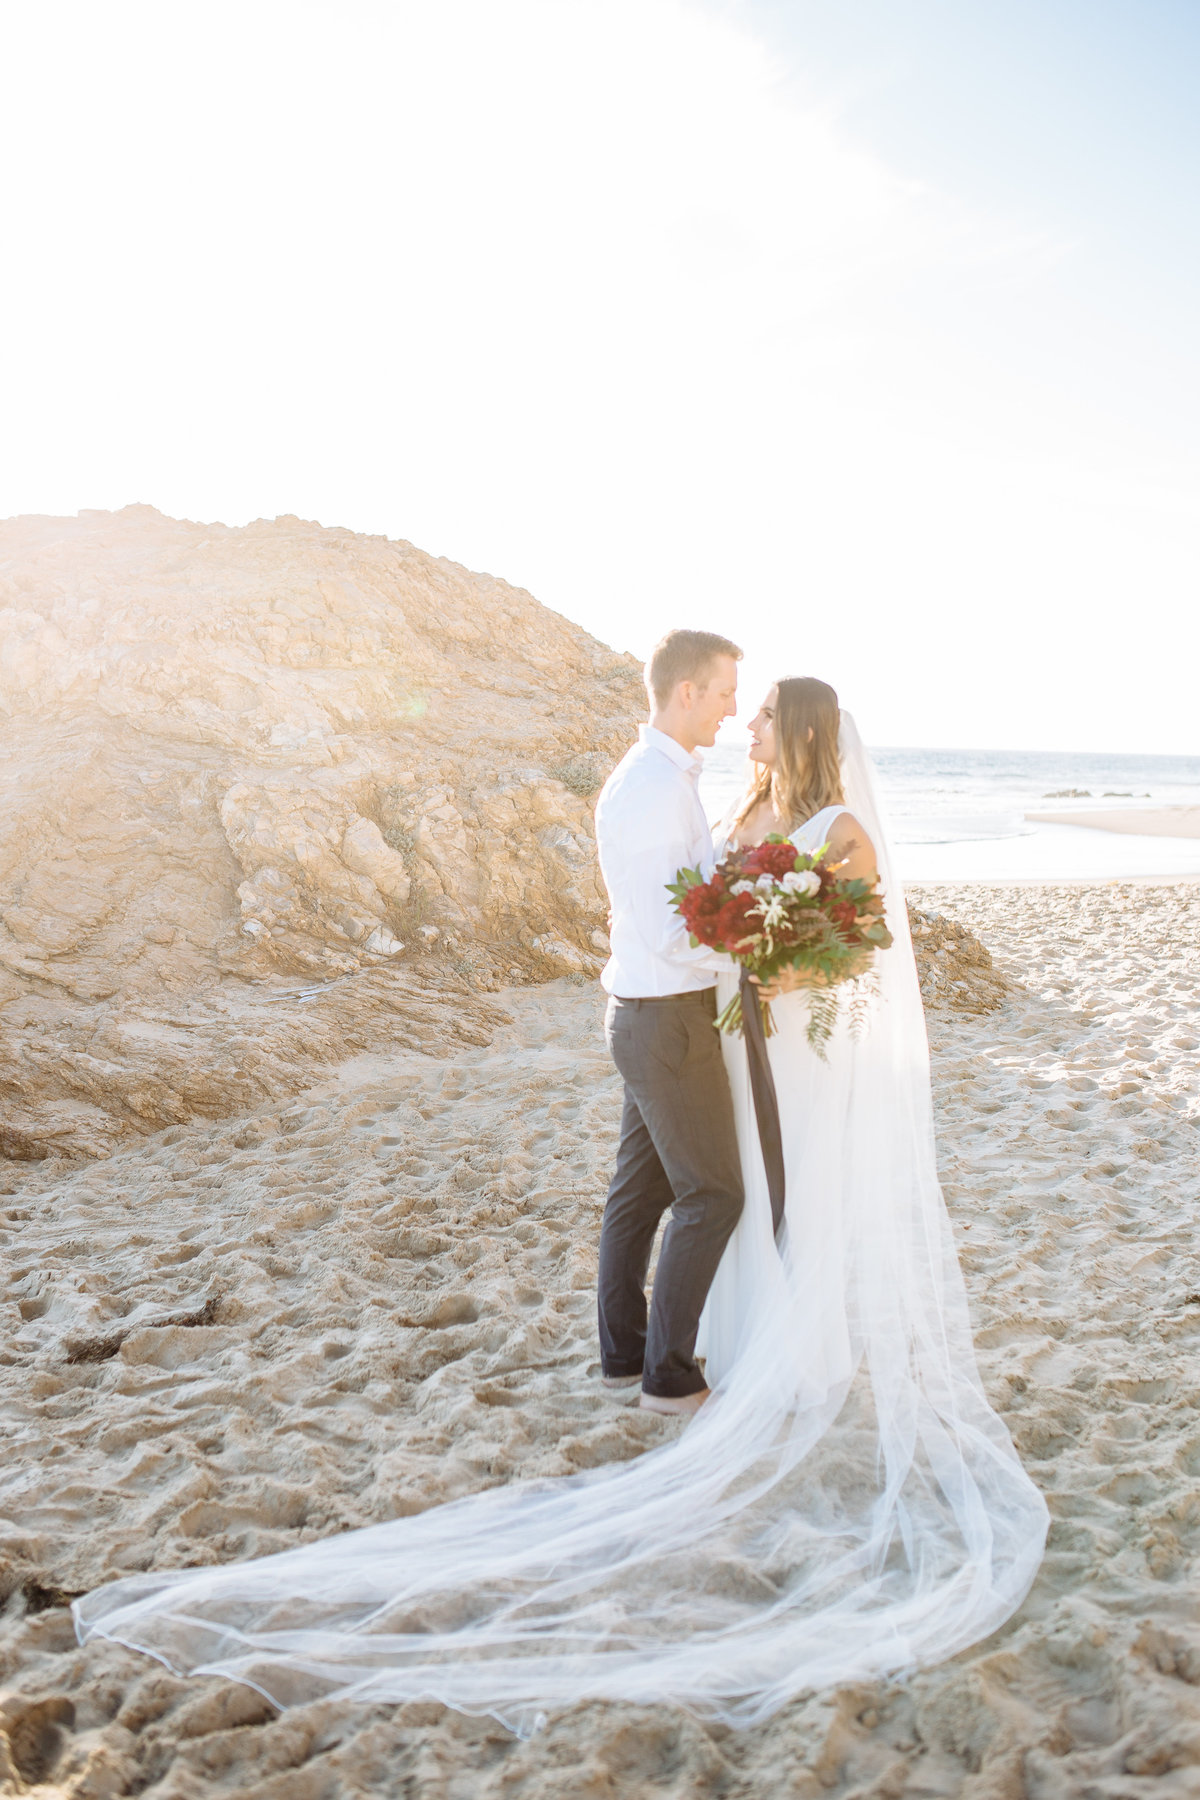 Sienna and Bryan | Beach Elopement | Orange County Wedding Photographer | Smith House Photography -95